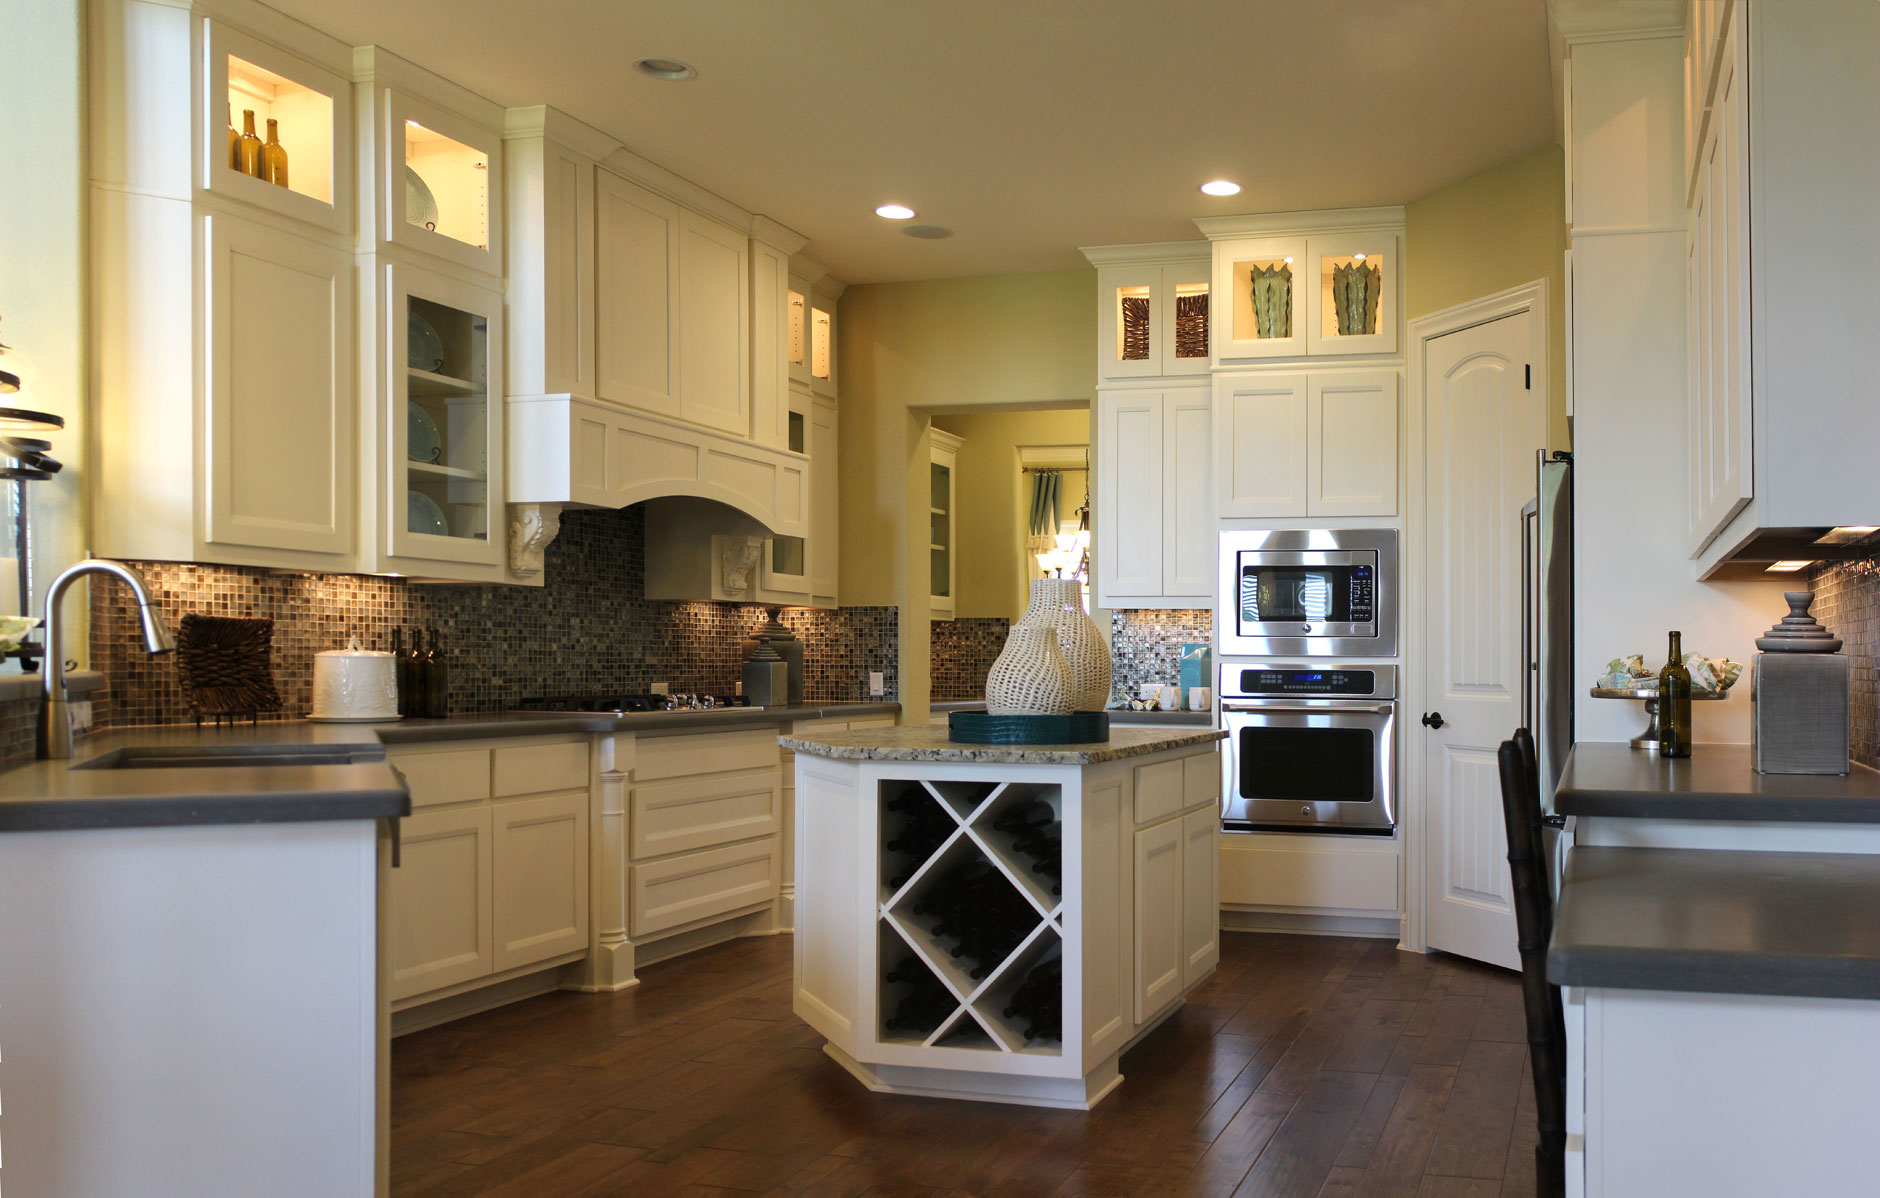 kitchen with combination frame cabinet doors by taylorcraft cabinet door company with mw8 stiles and rails